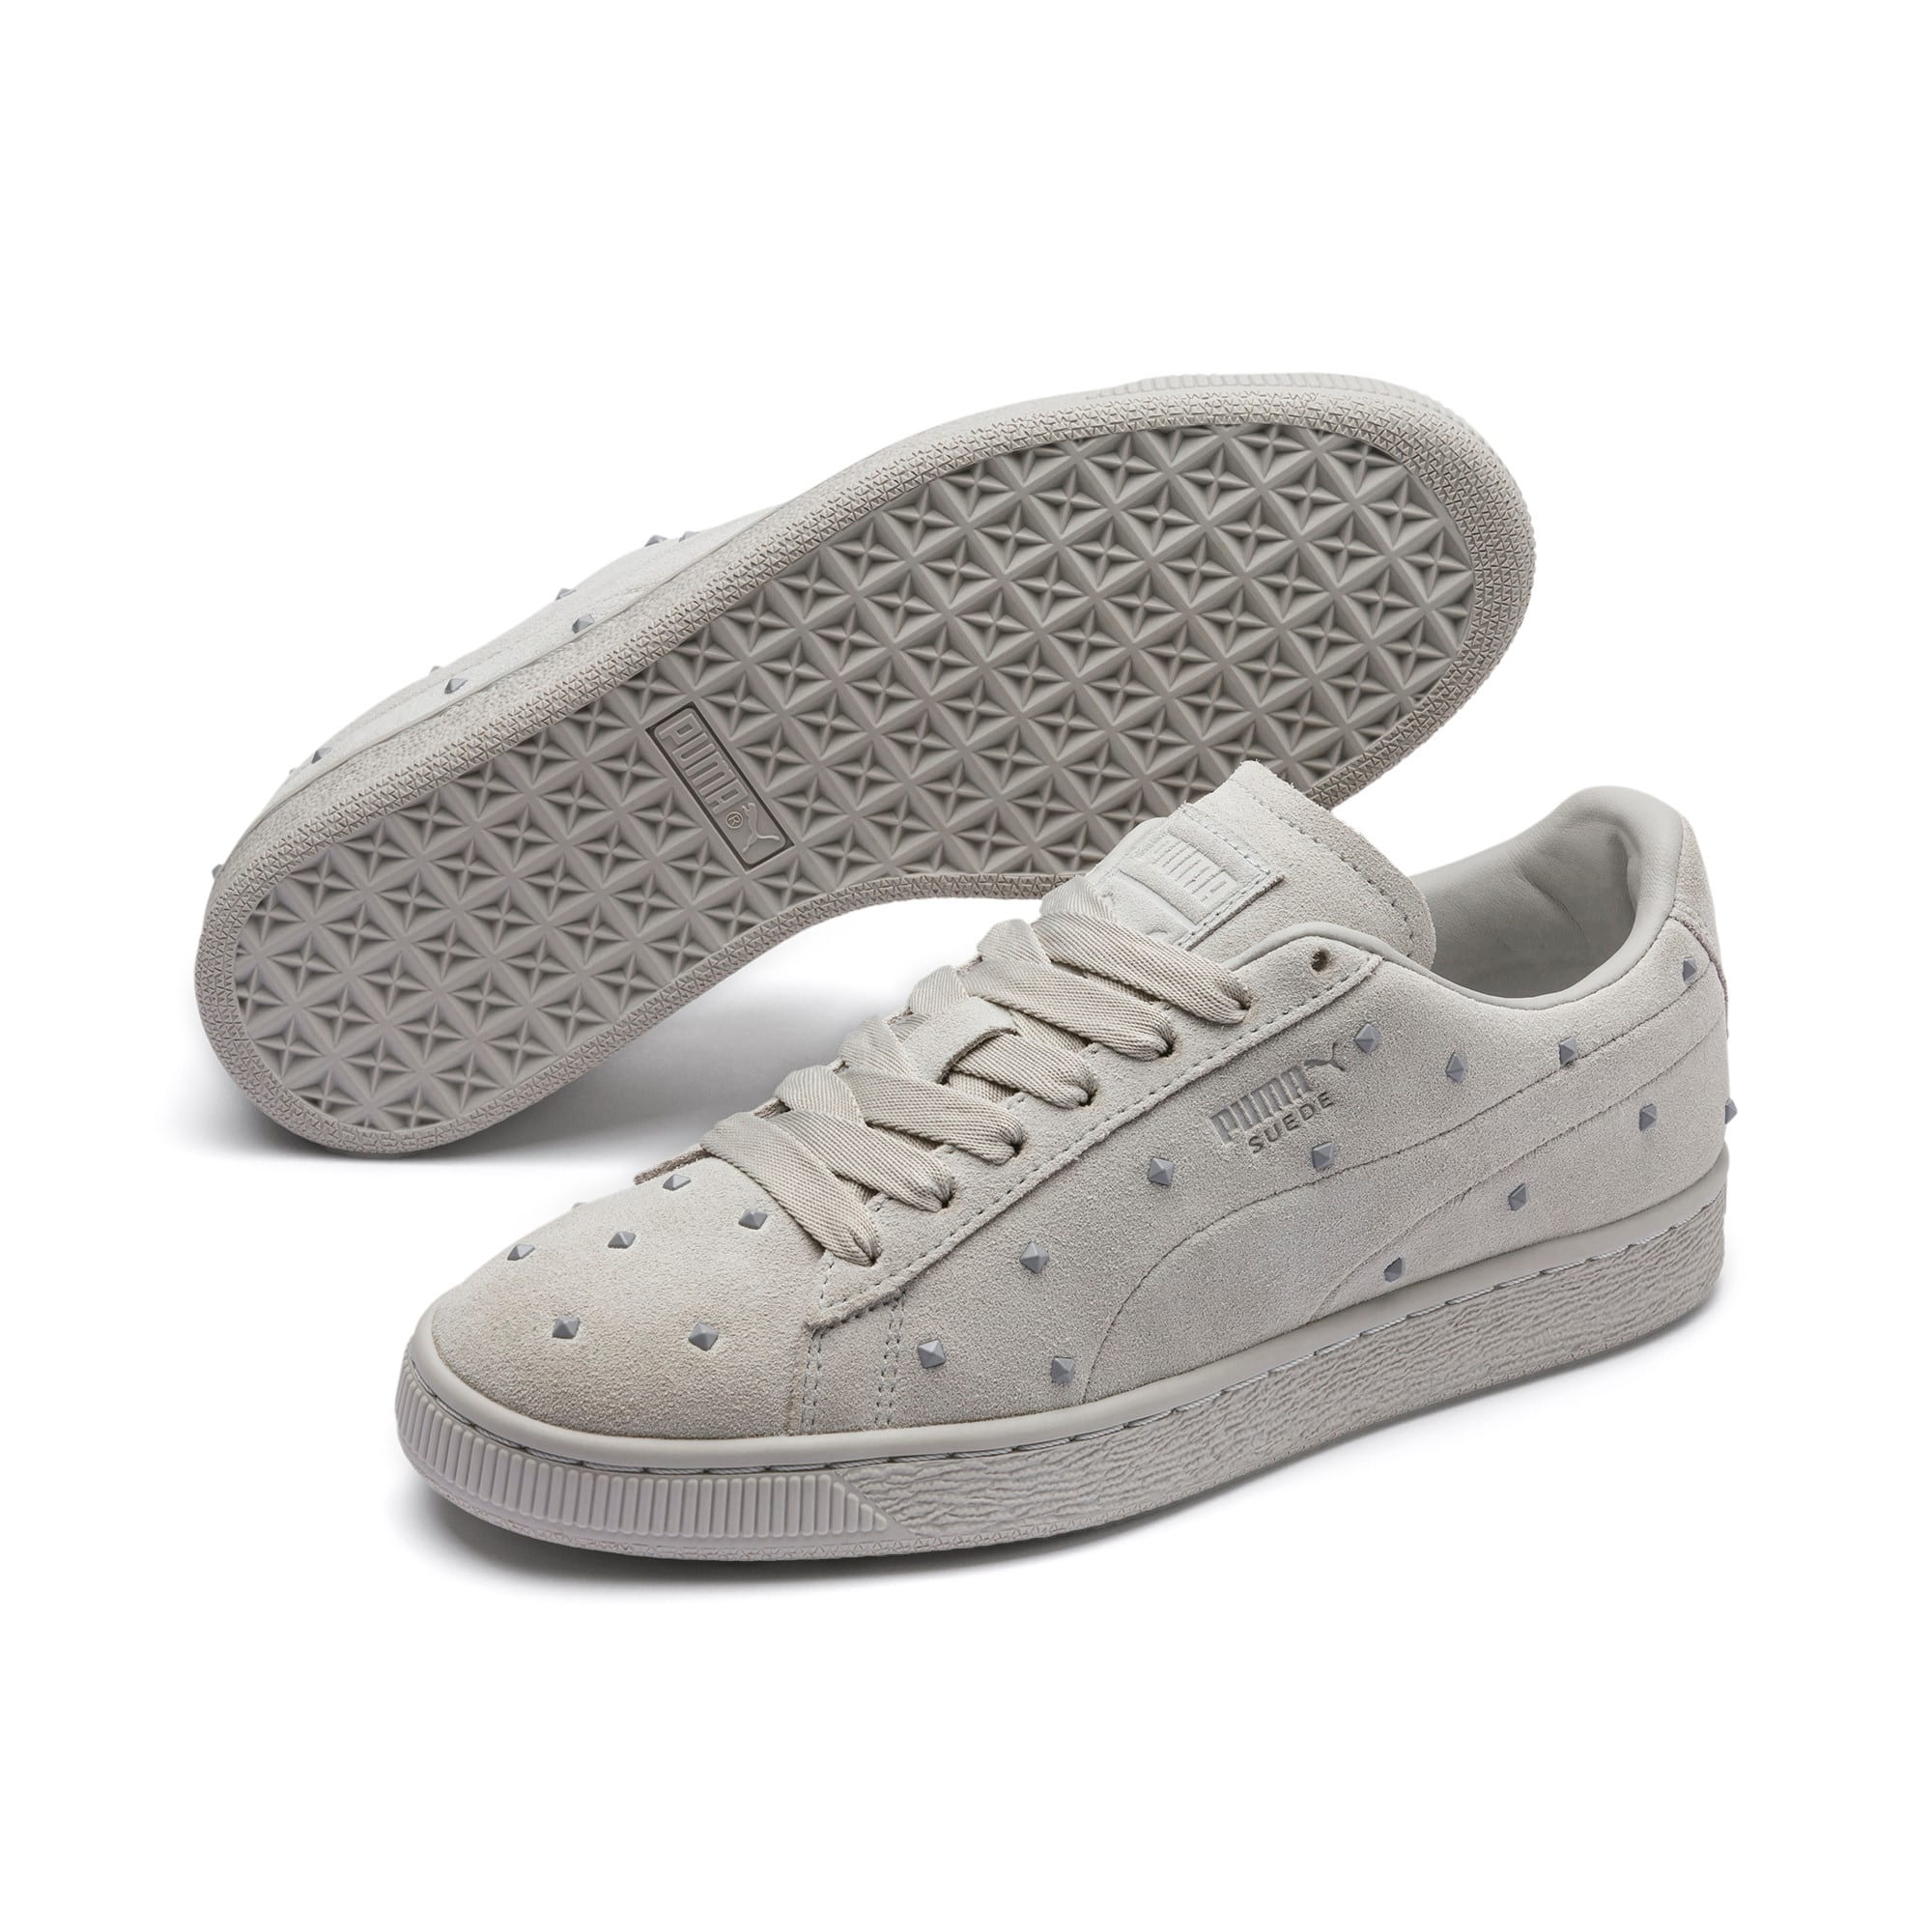 Thumbnail 3 of Suede Studs Women's Trainers, Gray Violet-Puma White, medium